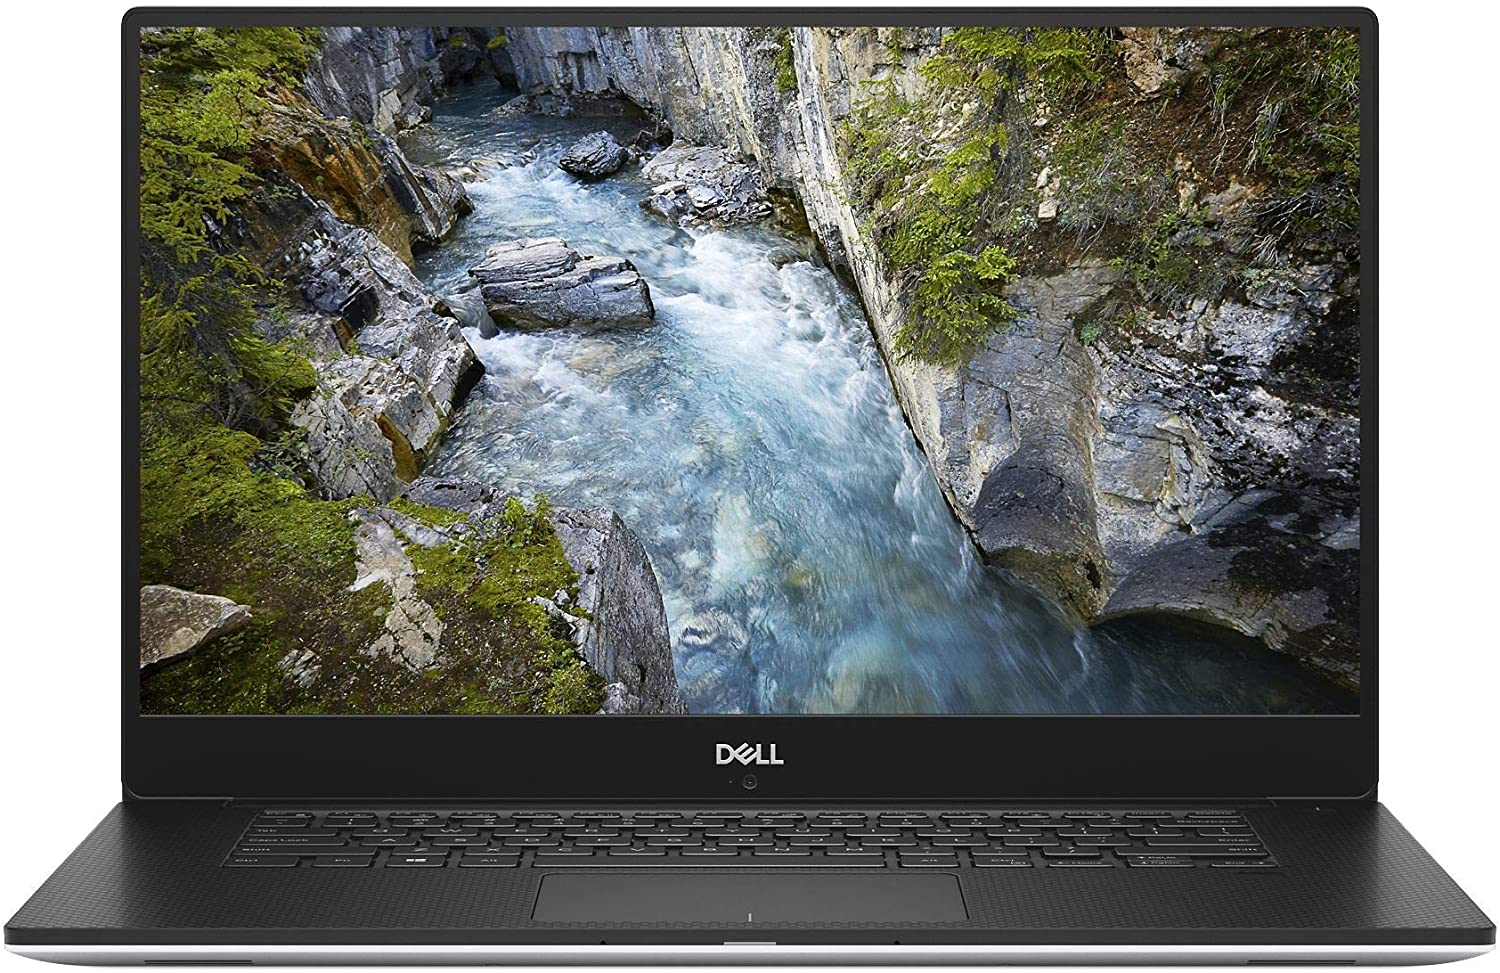 "Dell Precision 5530 1920 X 1080 15.6"" LCD Mobile Workstation with Intel Core i7-8850H Hexa-core 2.6 GHz, 16GB RAM, 512GB SSD"